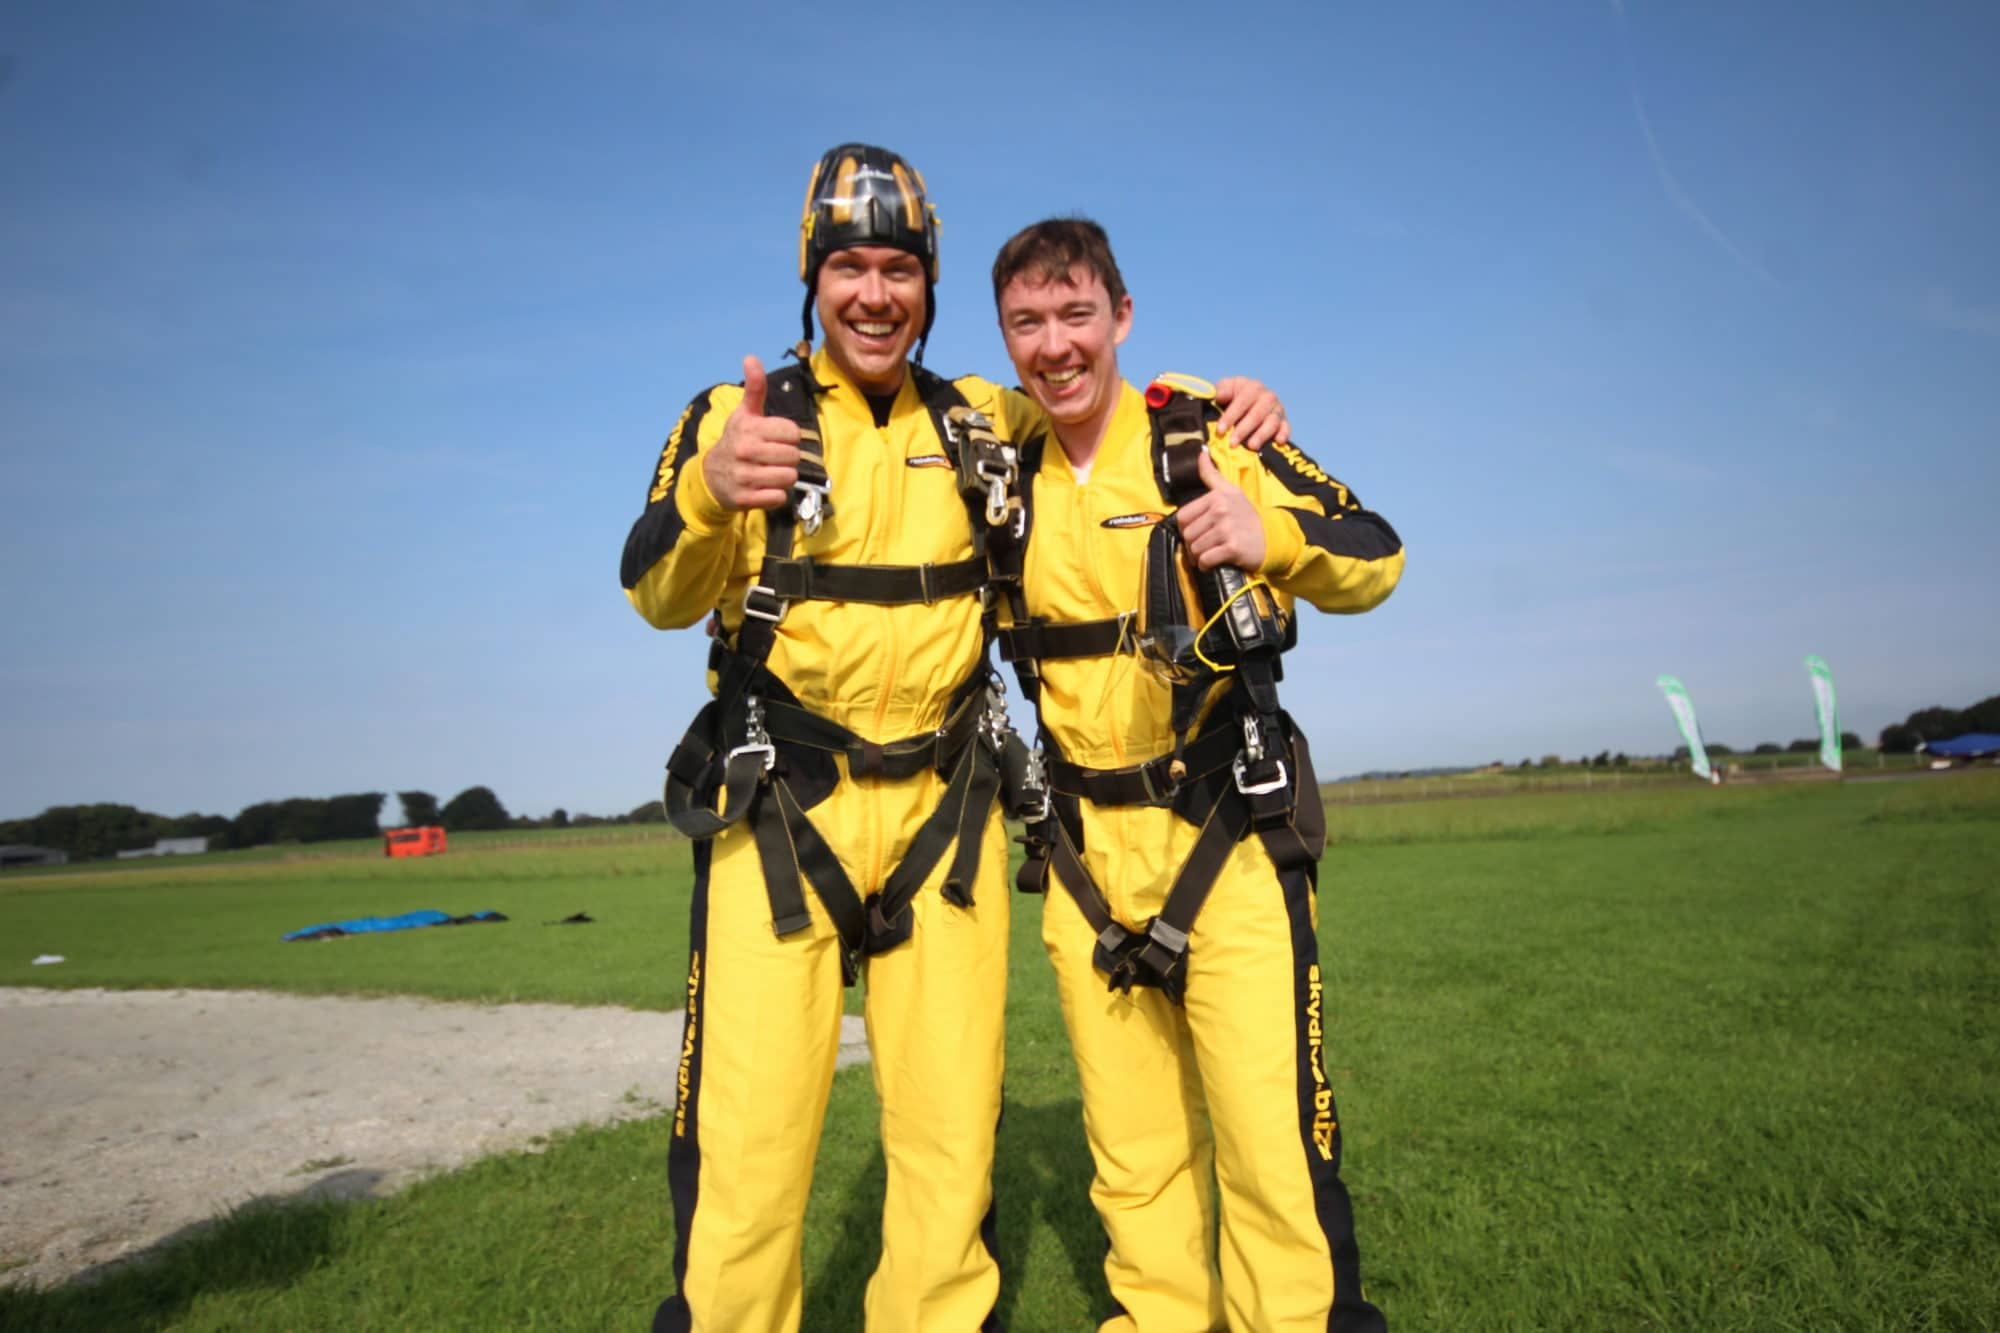 two people giving thumbs up in skydiving suits